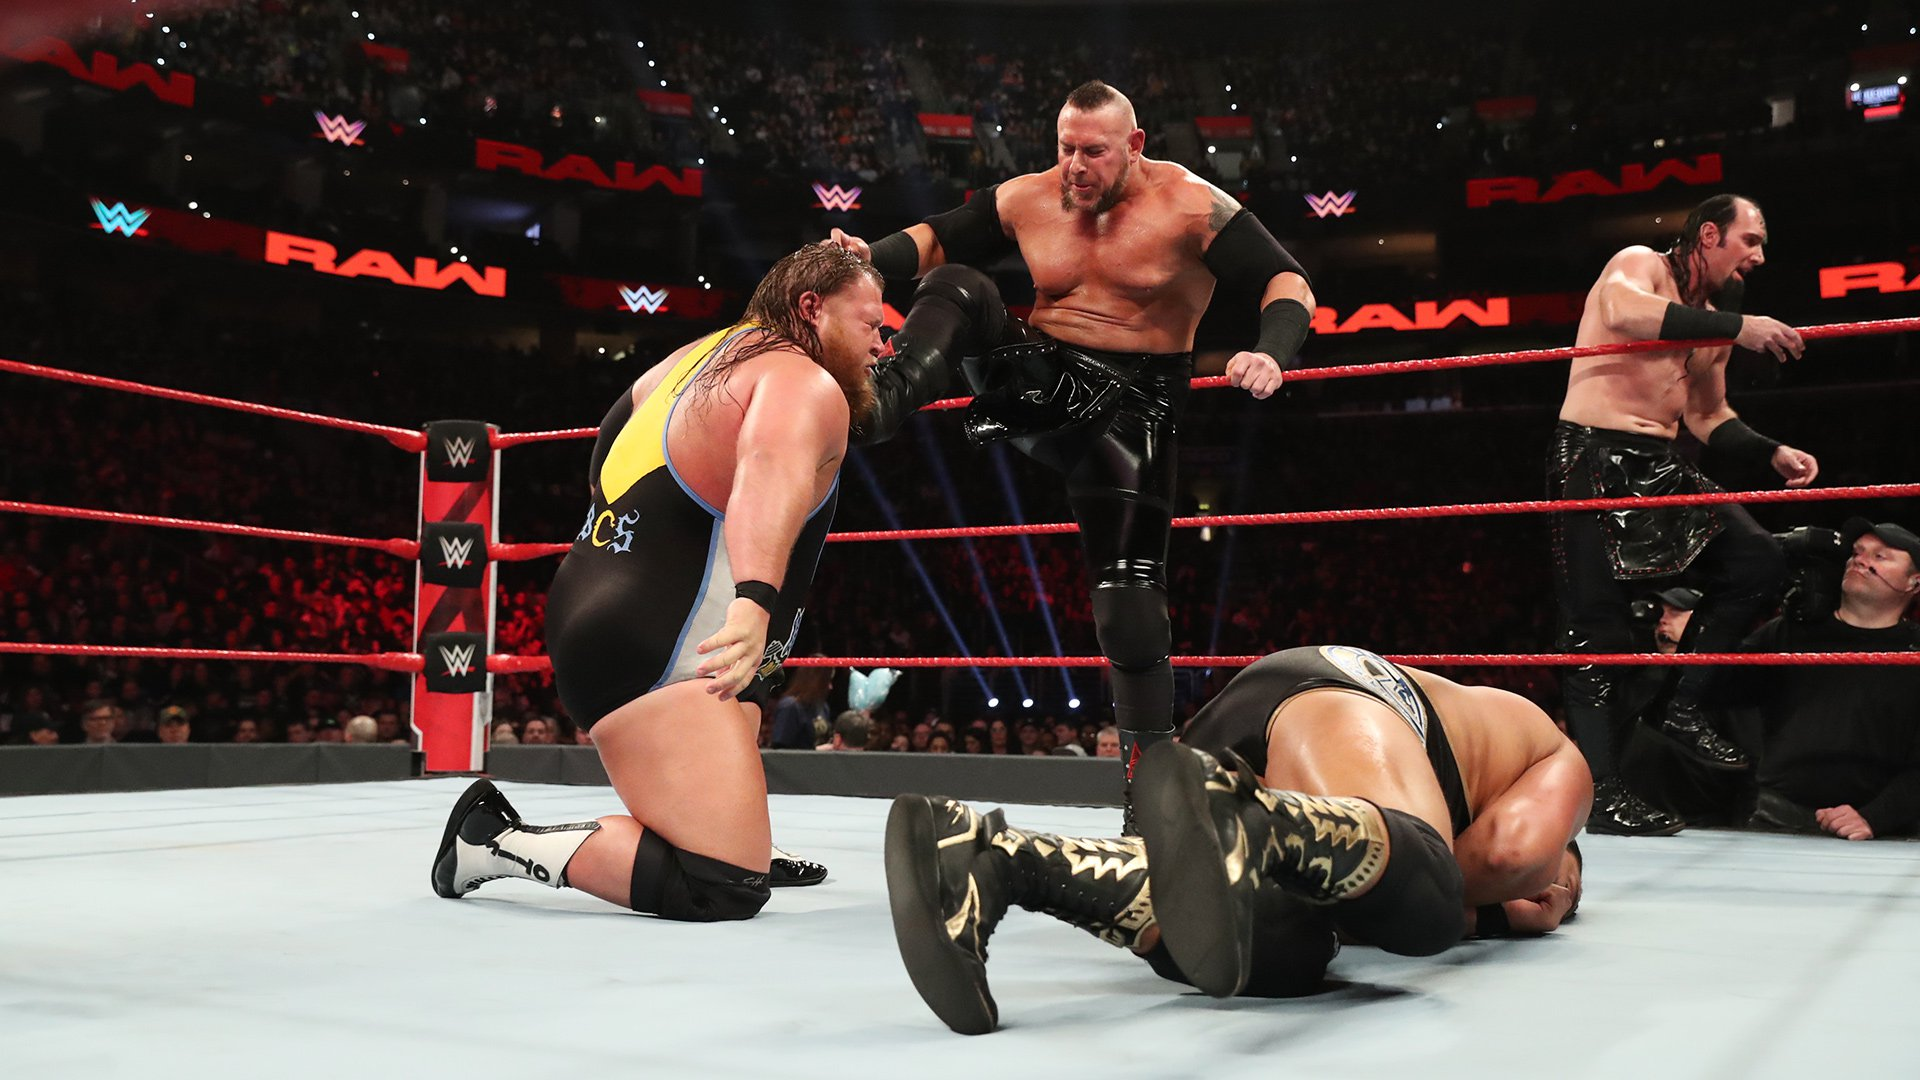 Heavy Machinery vs. The Ascension - Tag Team Gauntlet Match: Raw, 4 Mars 2019